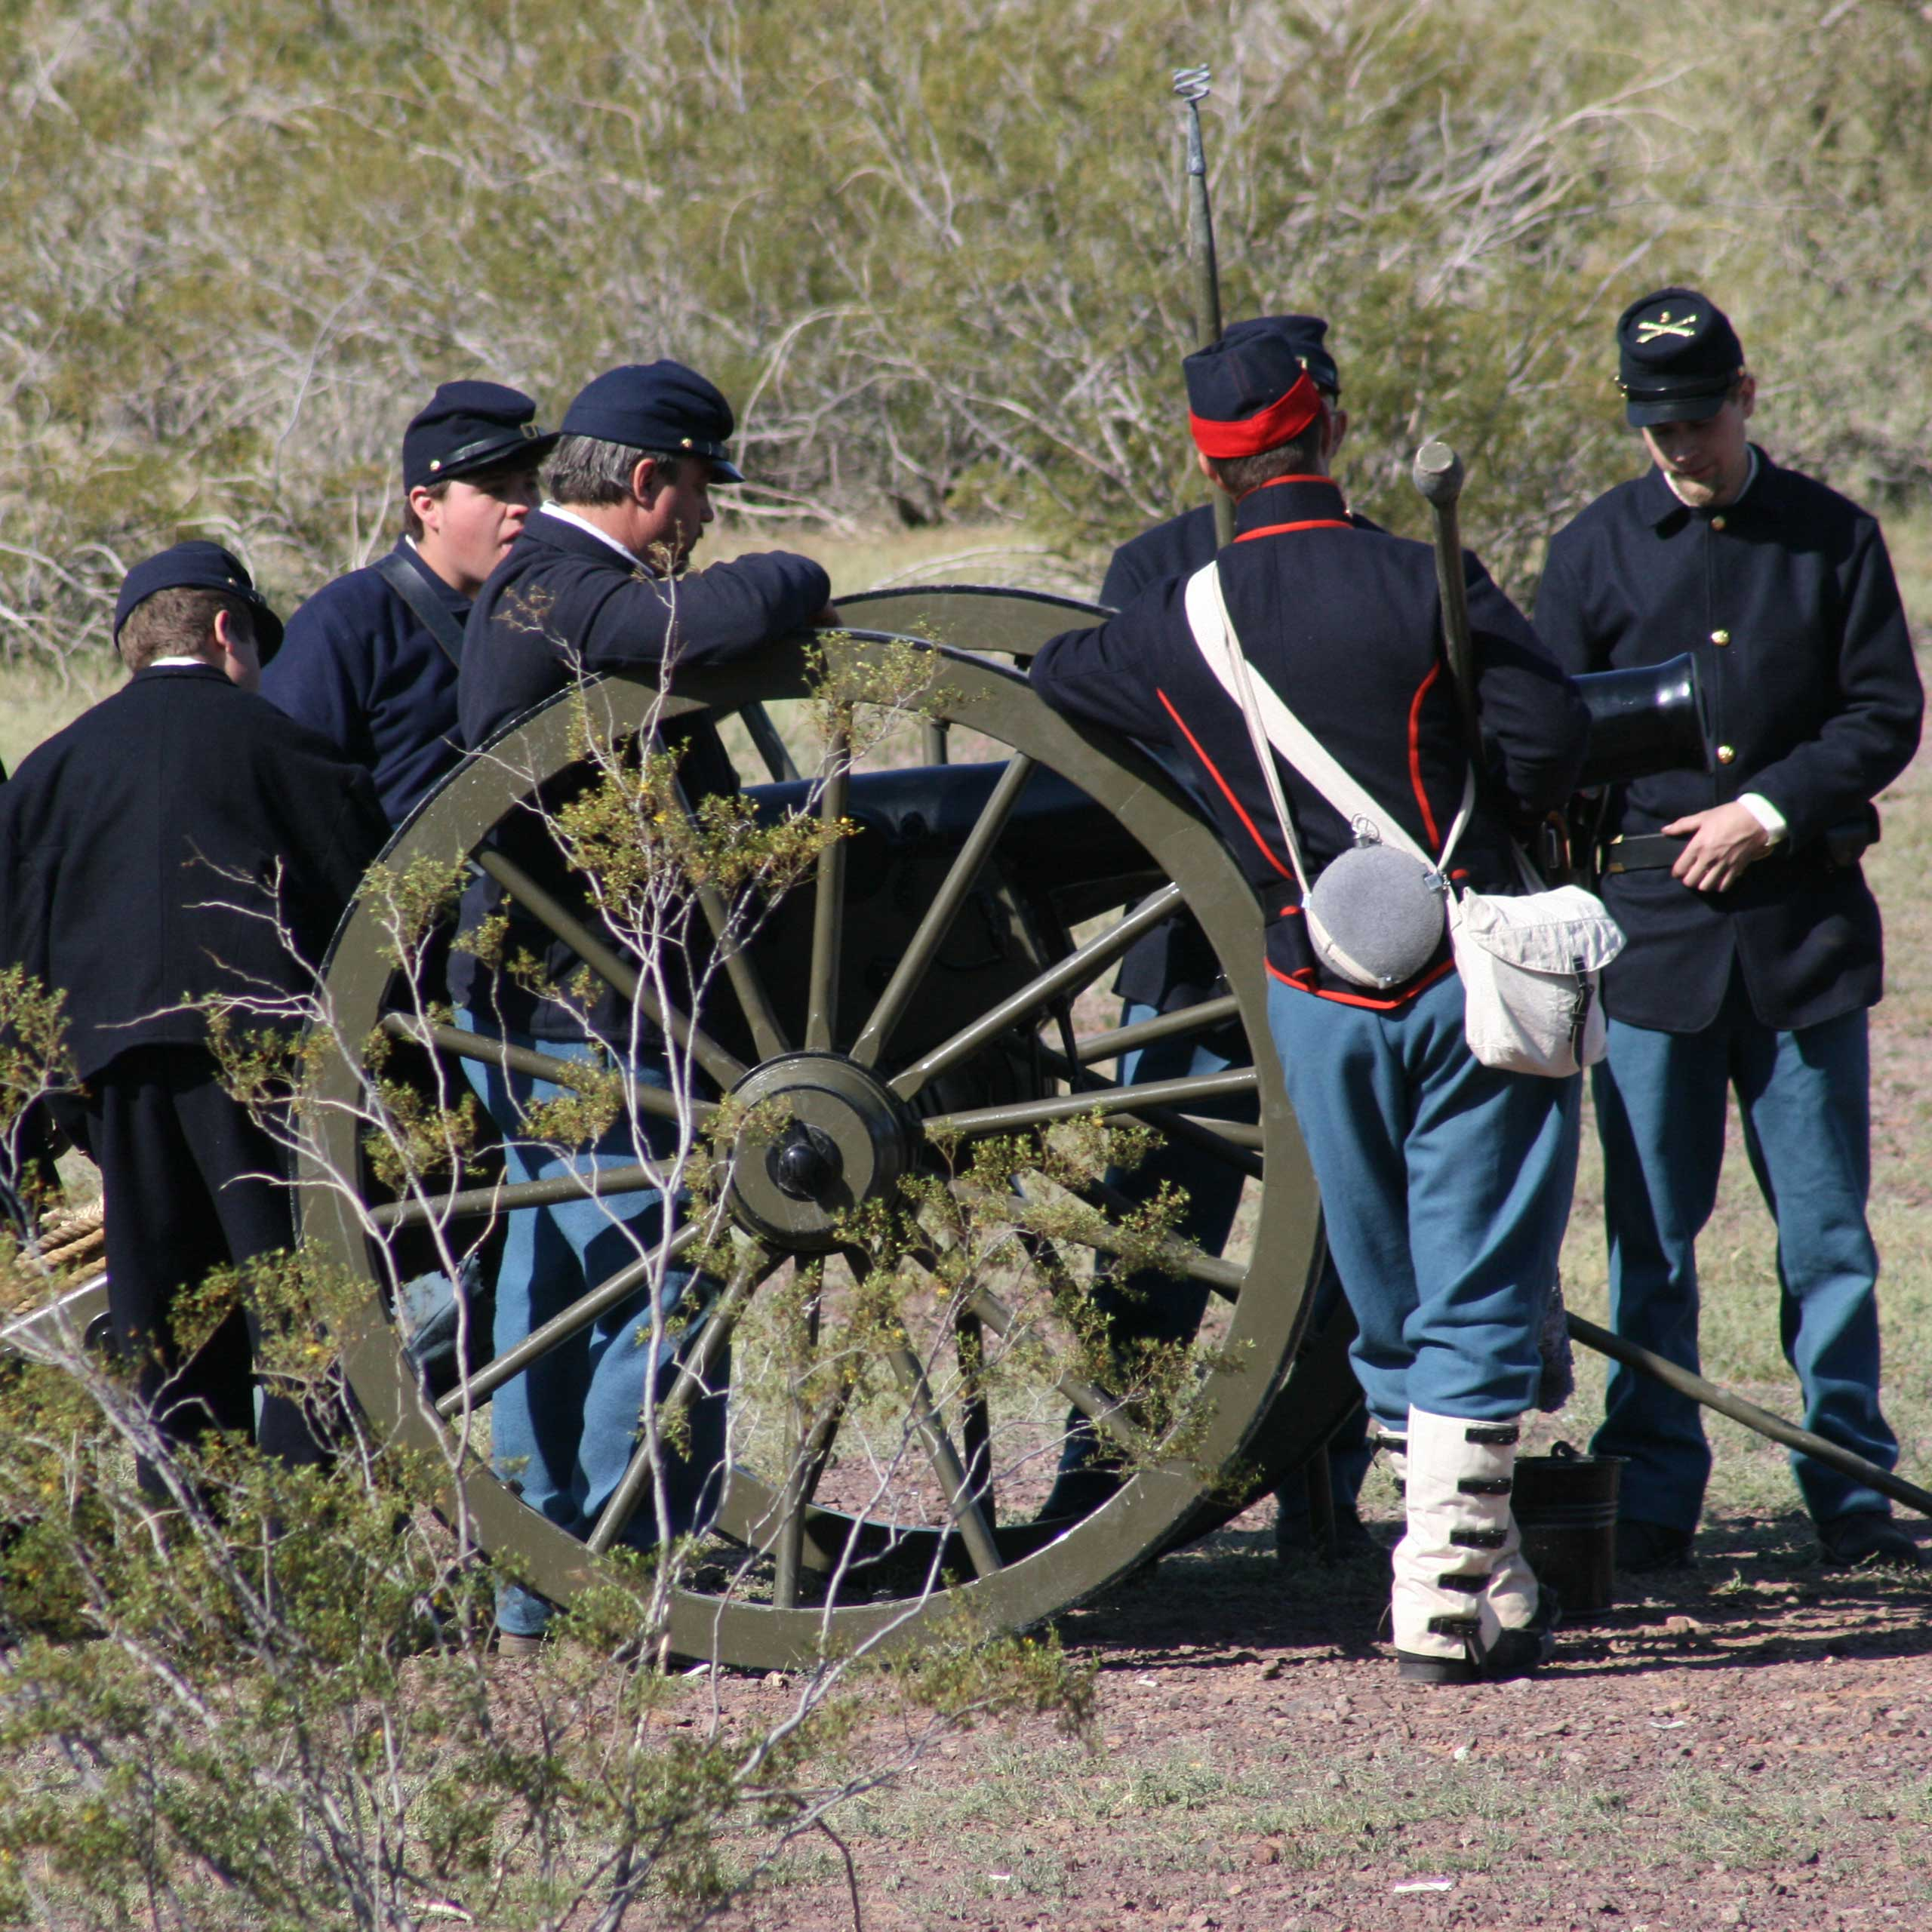 Civil War in the Southwest is an annual event held at Picacho Peak State Park depicting the historic re-enactment of an Arizona Civil War skirmish, Battle of Picacho Pass.